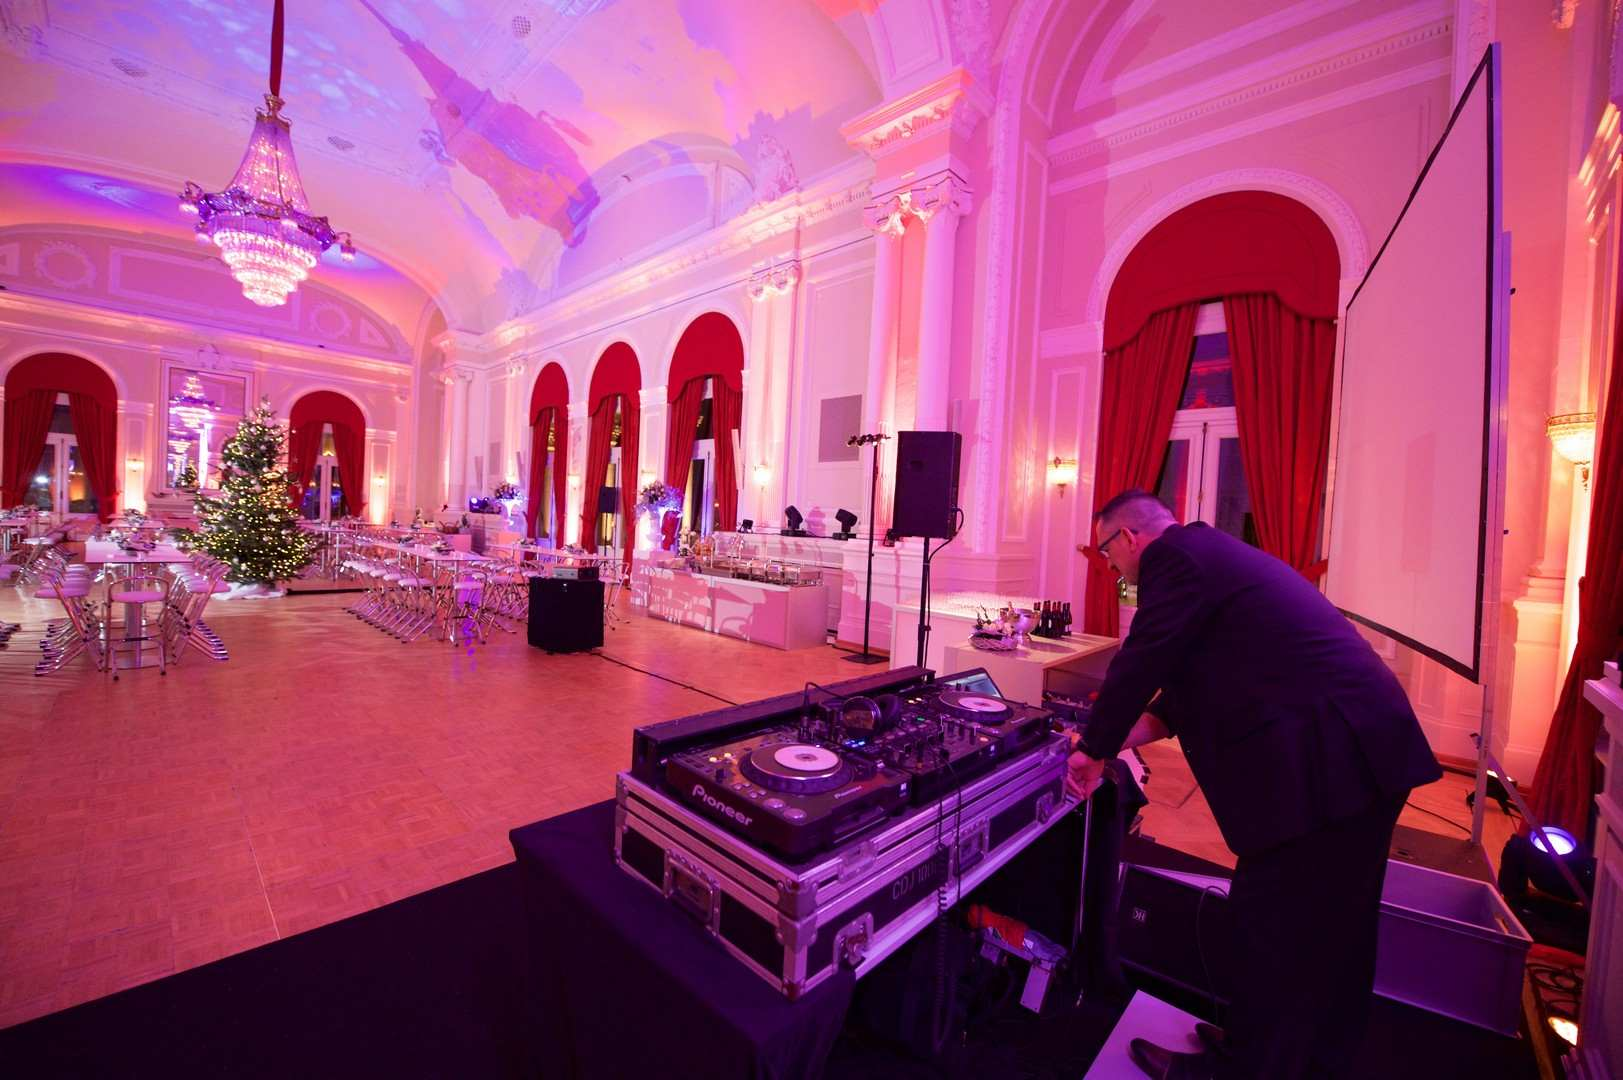 xmas-party-loyens-loeff-2014-carte-blanche-diner-lux